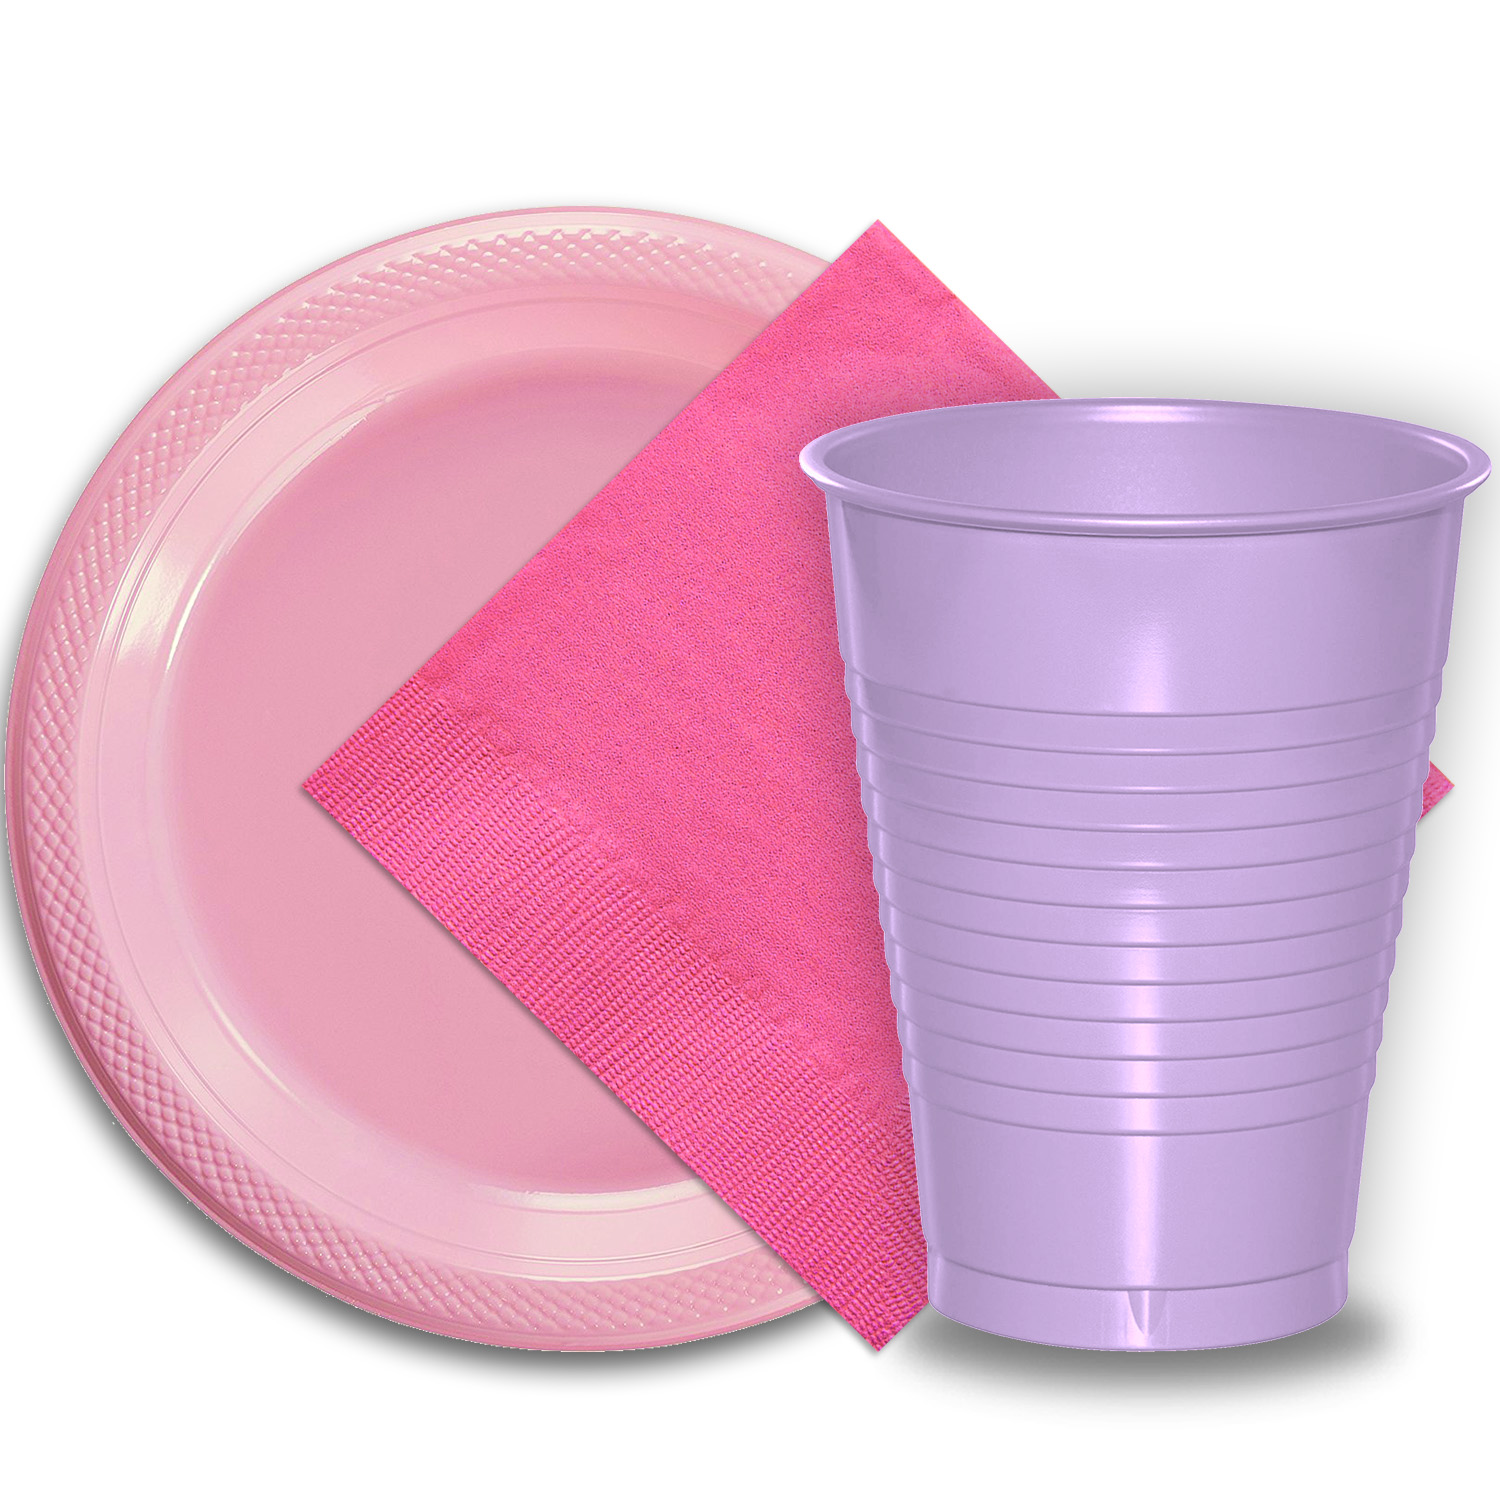 """50 Pink Plastic Plates (9""""), 50 Lavender Plastic Cups (12 oz.), and 50 Hot Pink Paper Napkins, Dazzelling Colored Disposable Party Supplies Tableware Set for Fifty Guests."""